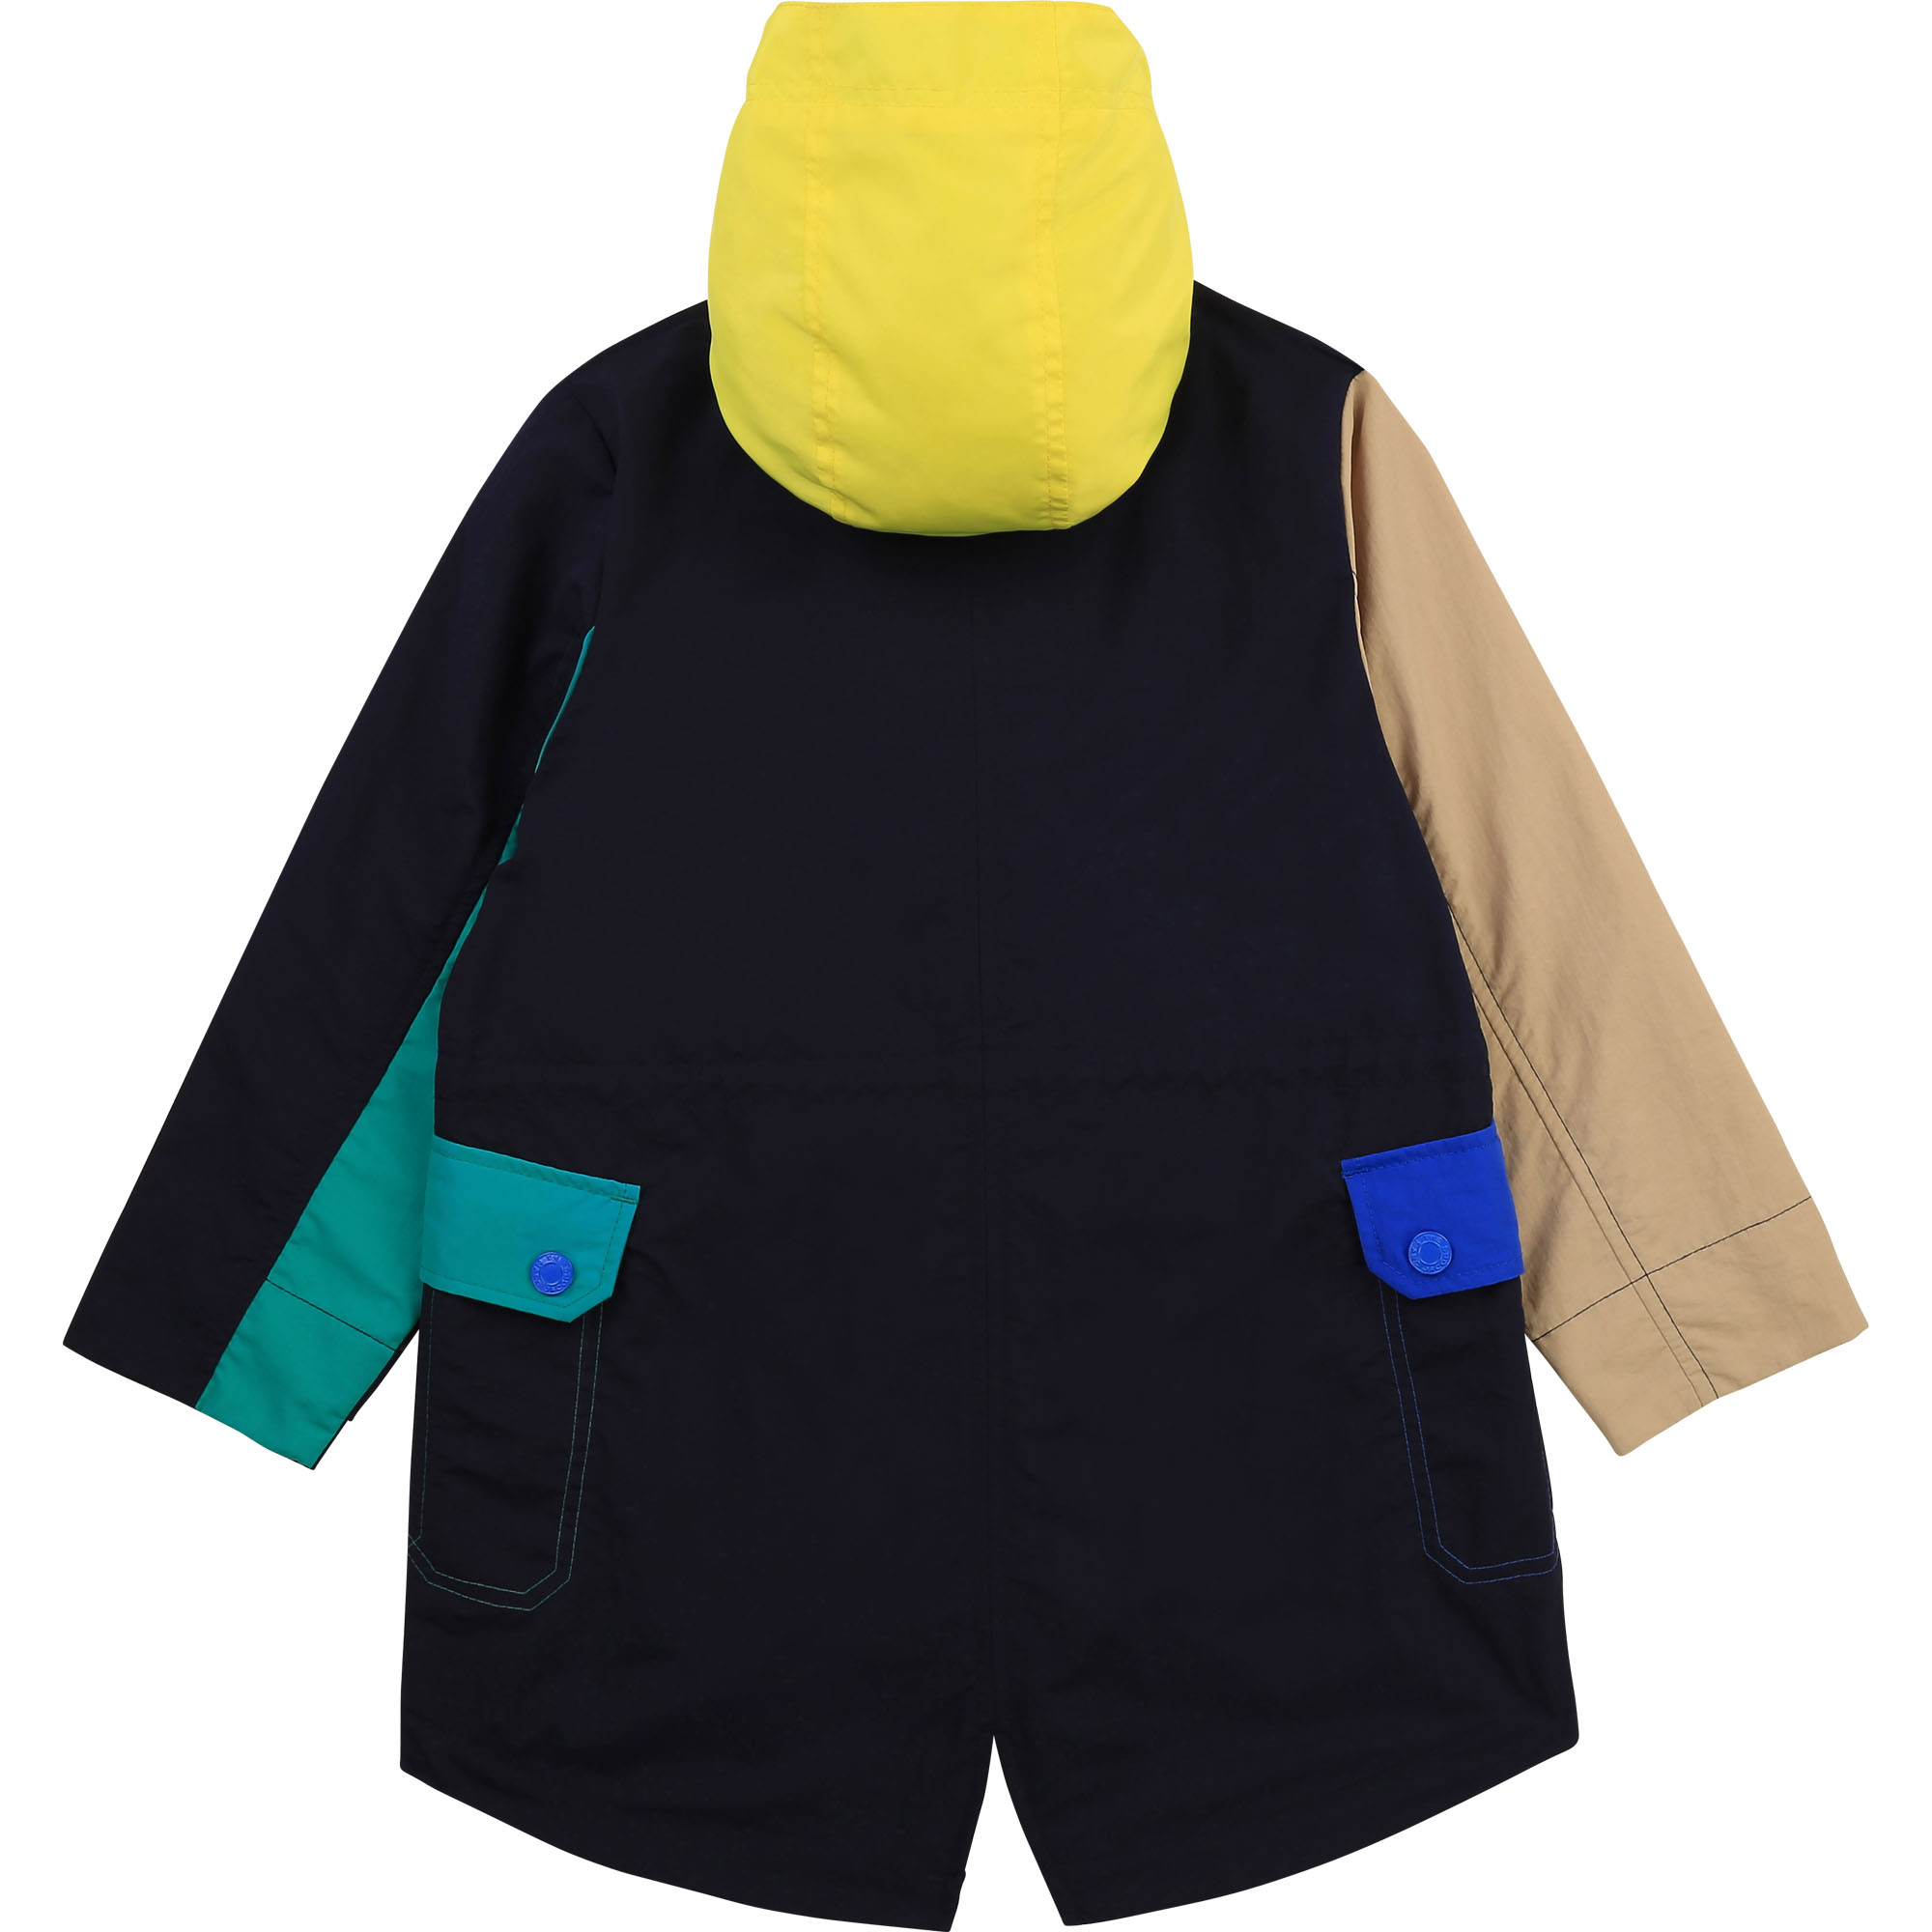 Hooded parka THE MARC JACOBS for BOY